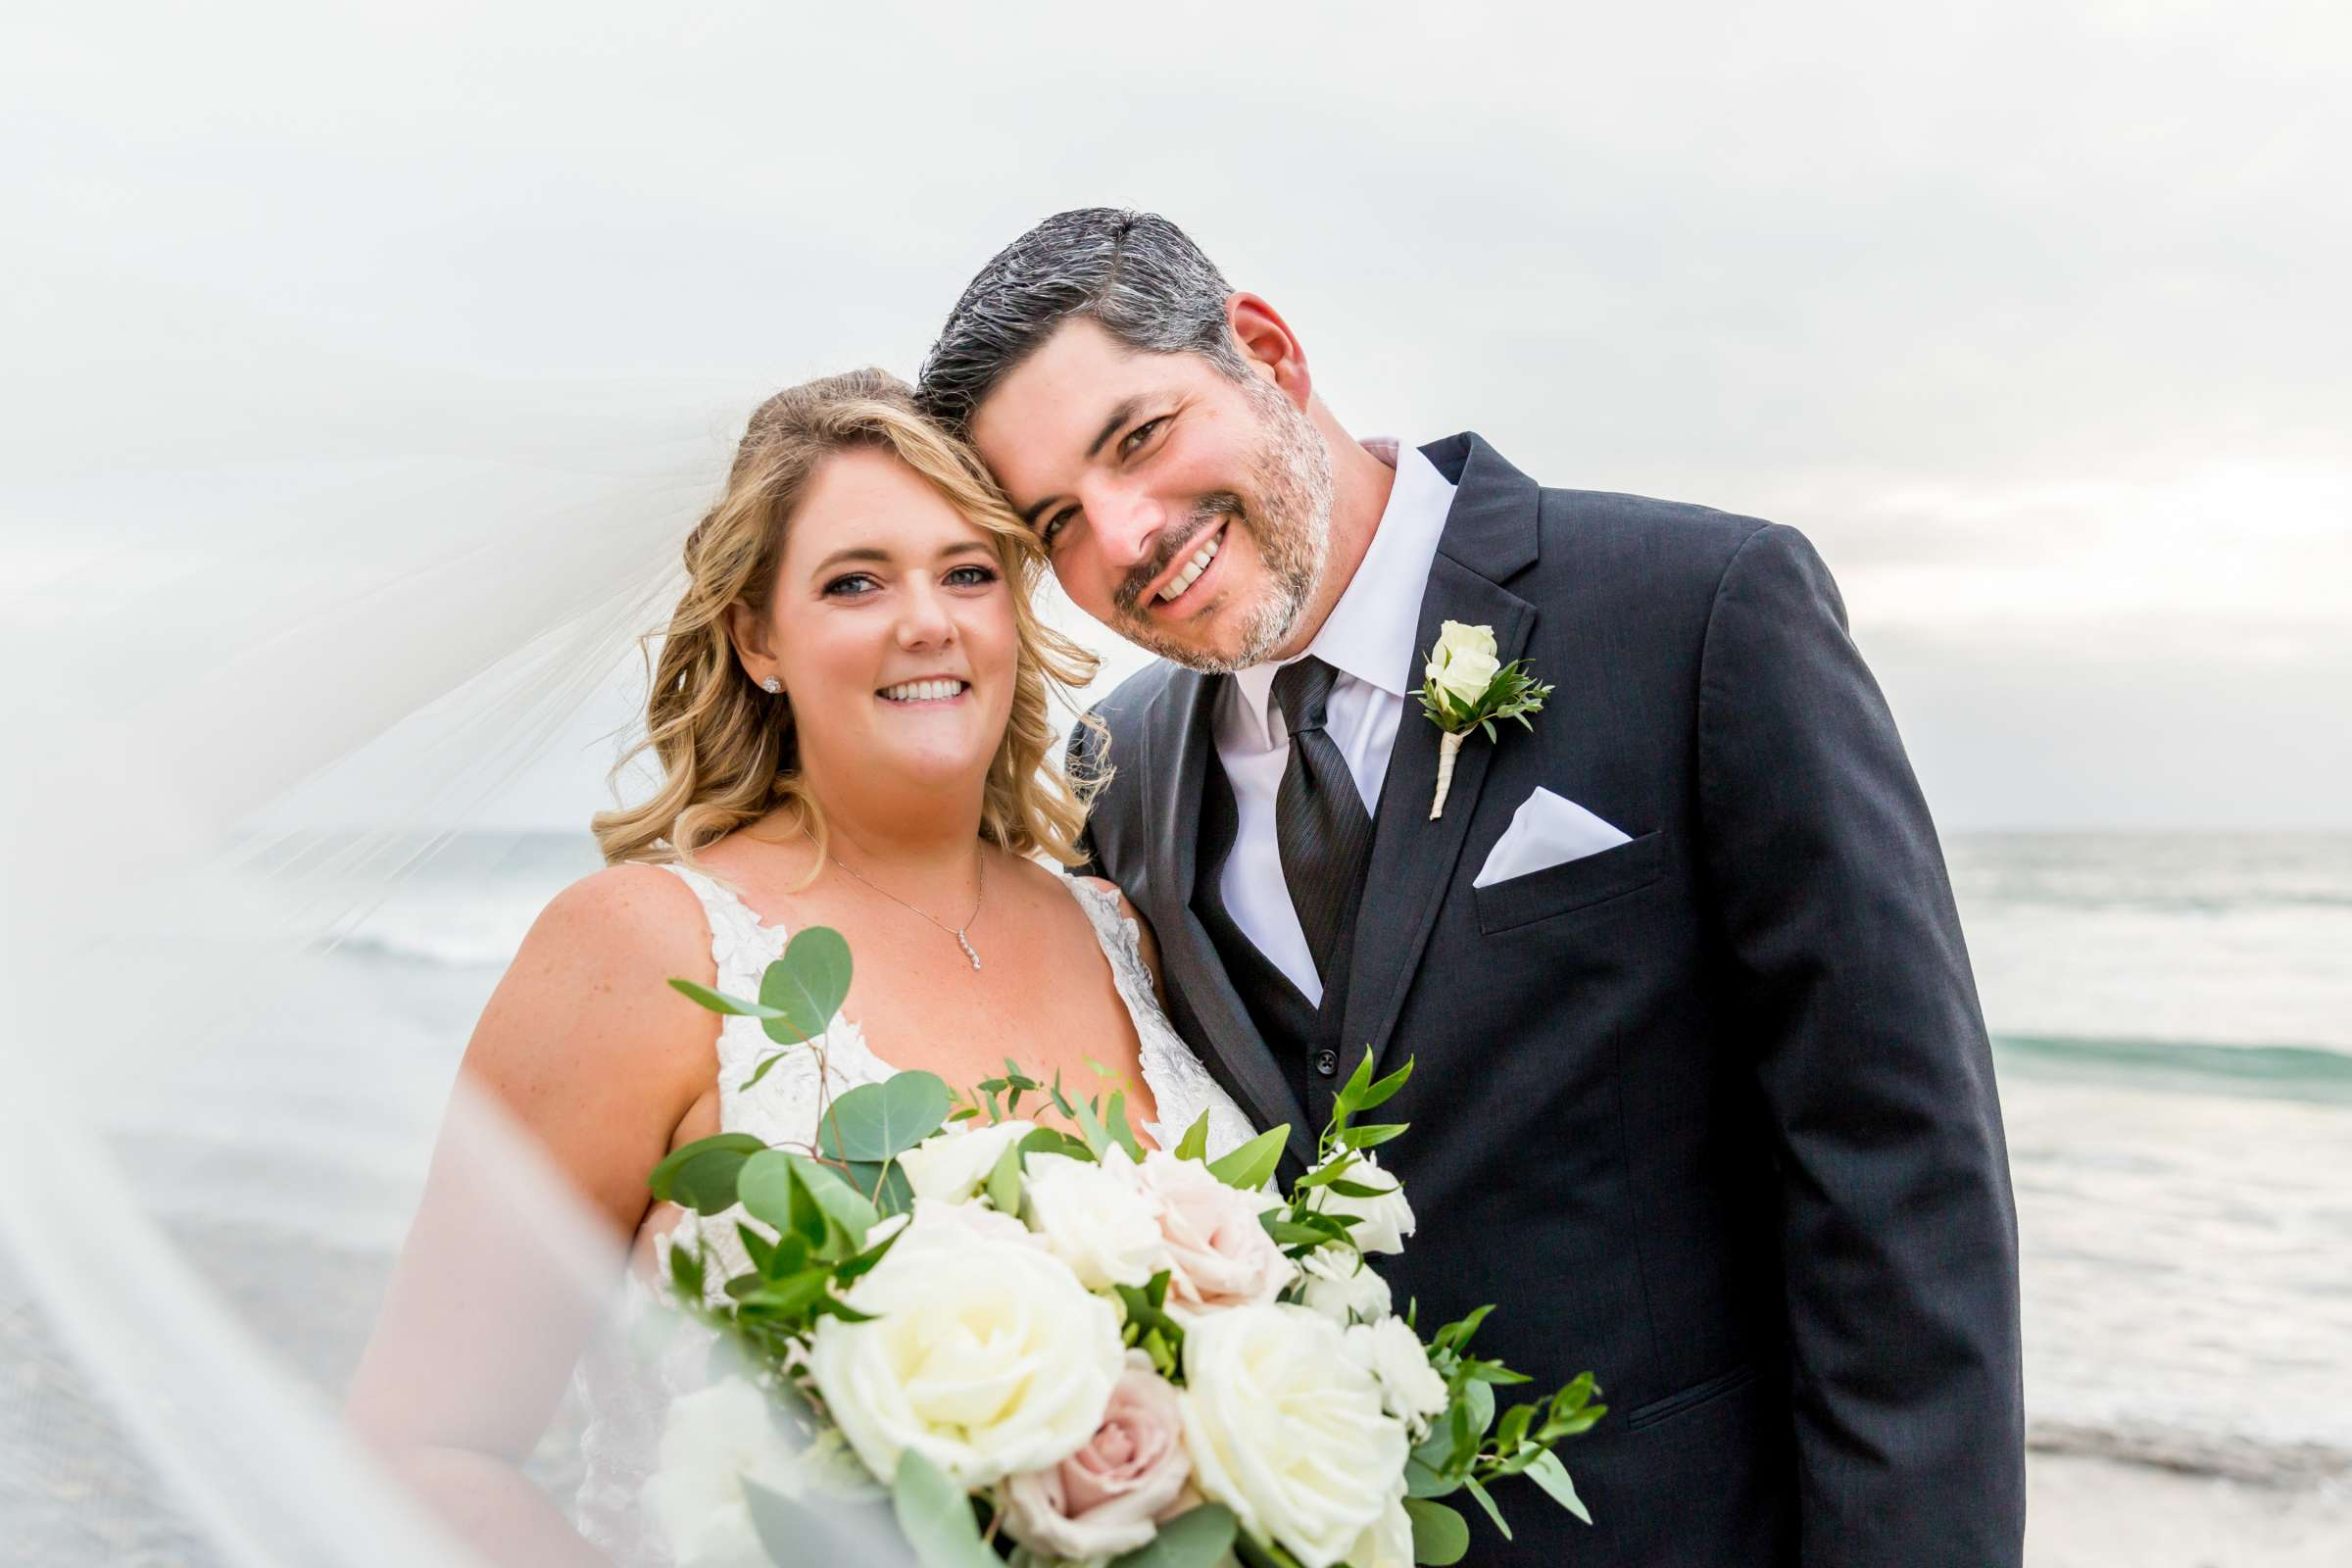 Cape Rey Carlsbad, A Hilton Resort Wedding, Michelle and Justin Wedding Photo #31 by True Photography